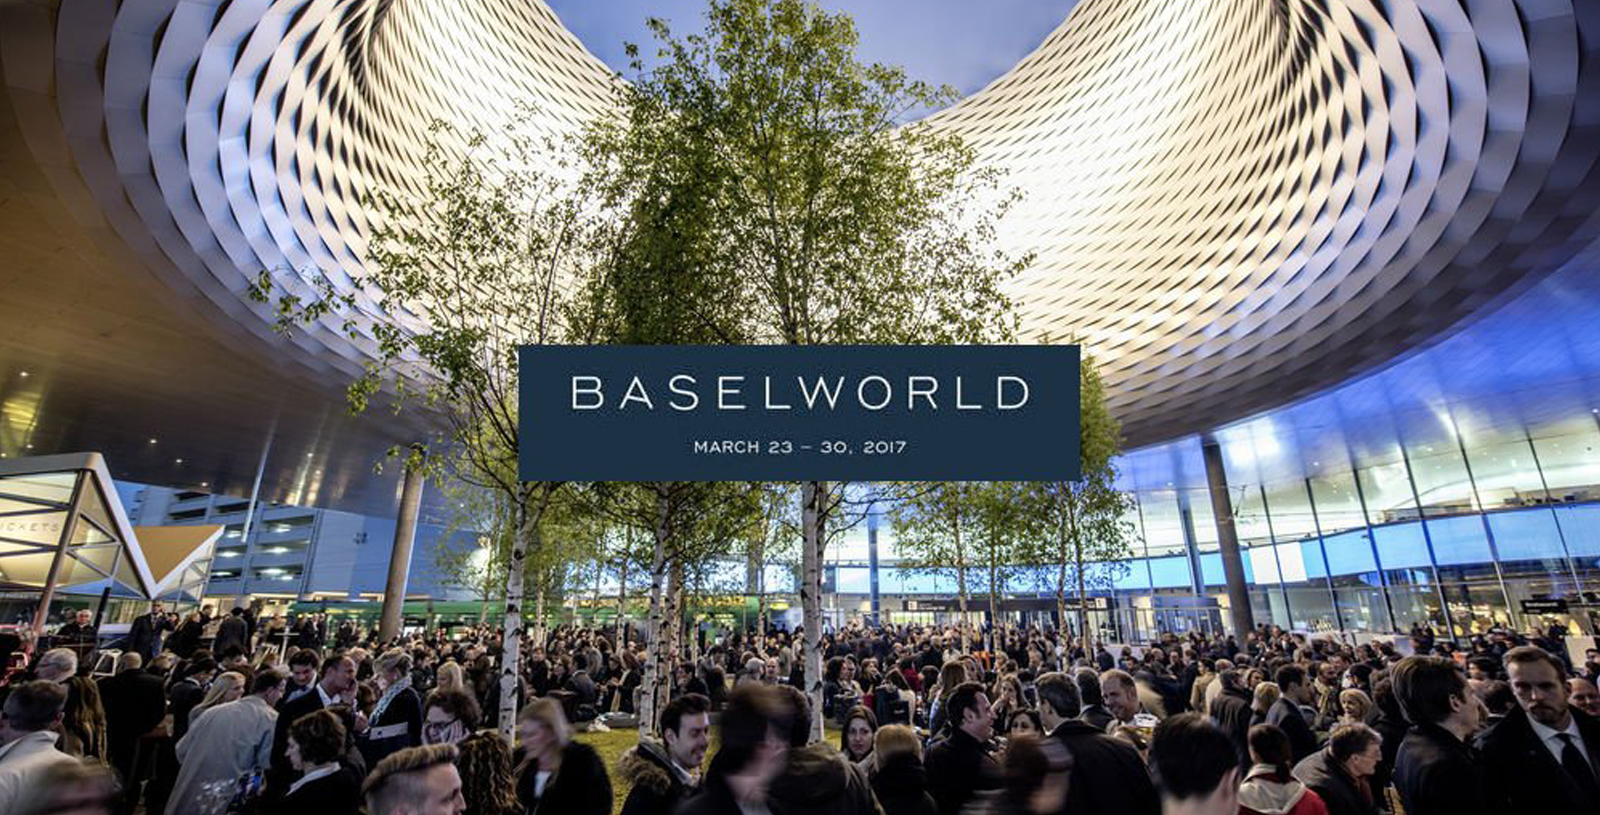 Counting down to the one unmissable show – Baselworld